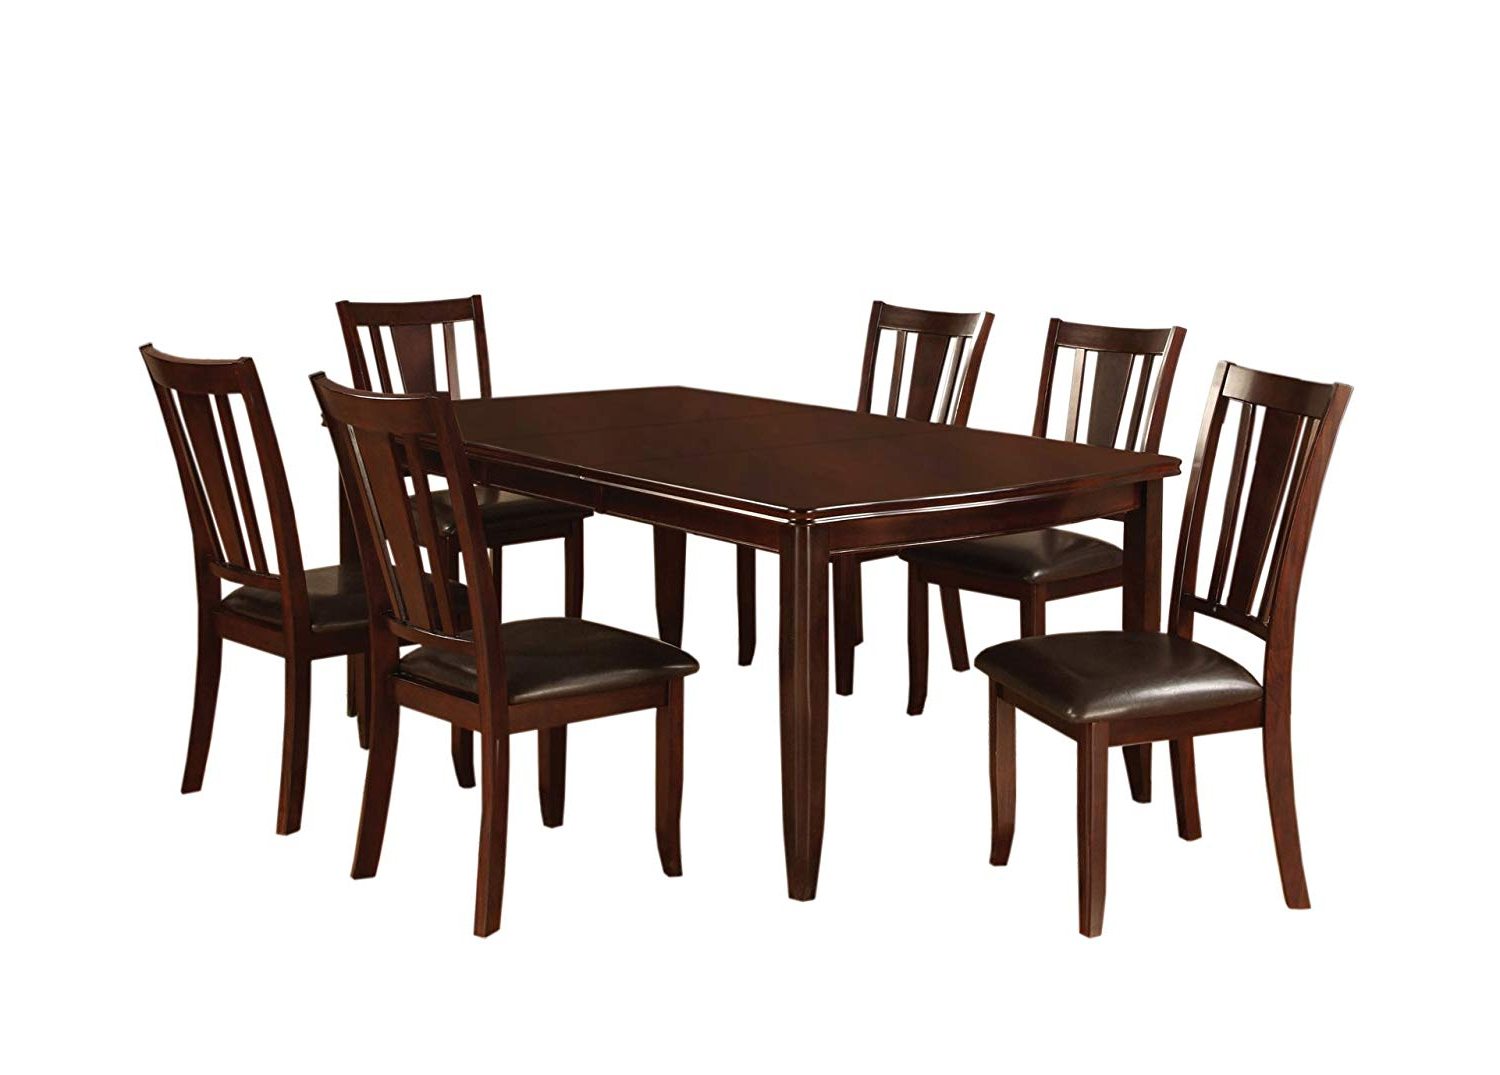 2020 Furniture Of America Anlow 7-Piece Dining Table Set With 18-Inch Expandable  Leaf, Espresso regarding Rustic Brown Lorraine Extending Dining Tables